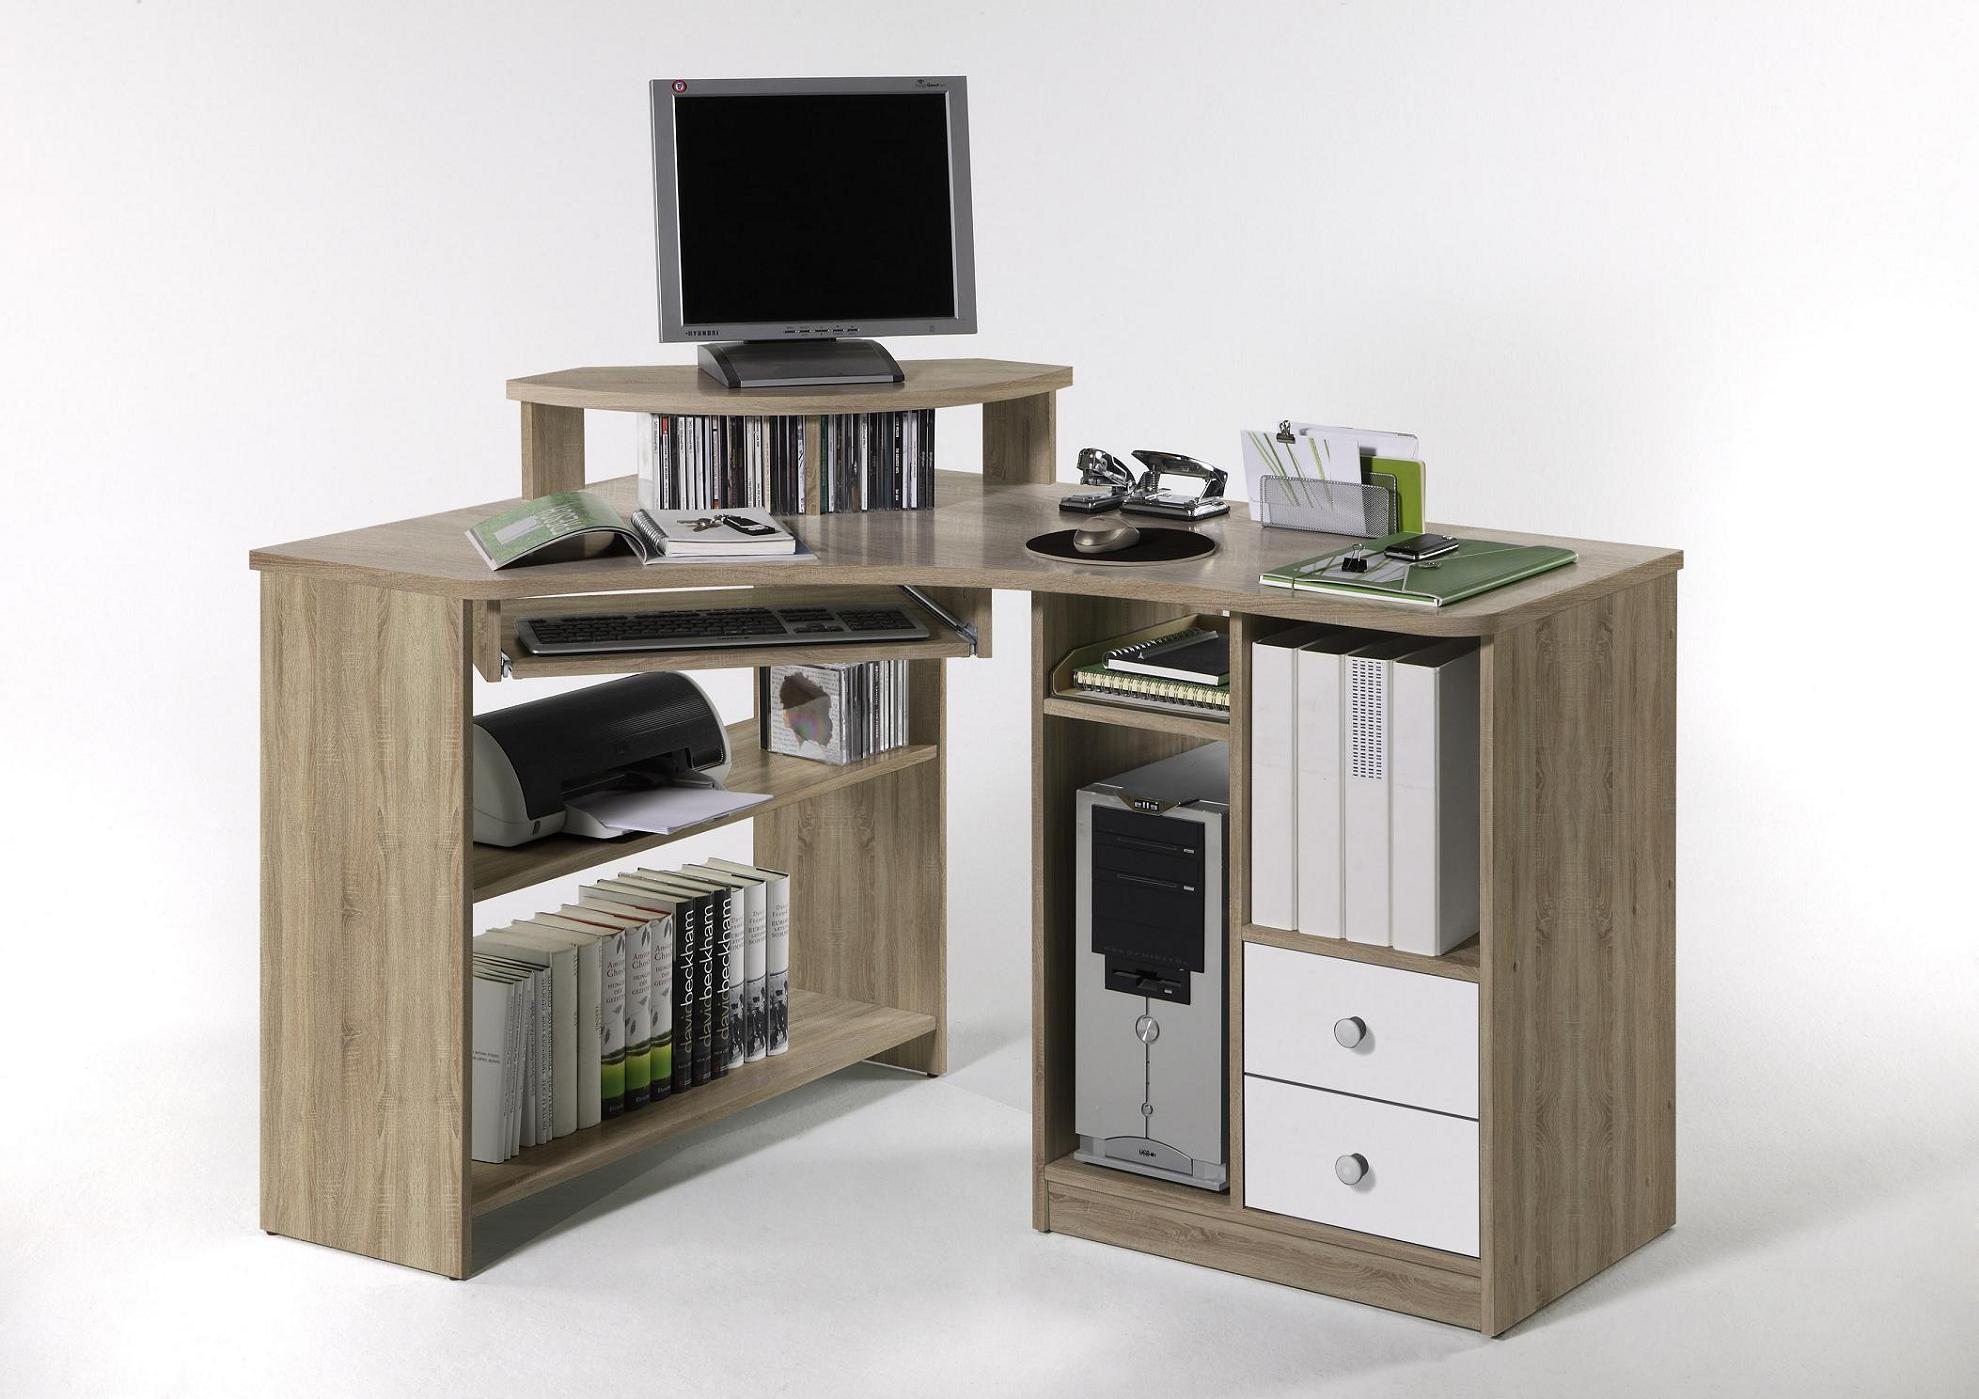 eckschreibtisch eiche sonoma bestseller shop f r m bel und einrichtungen. Black Bedroom Furniture Sets. Home Design Ideas